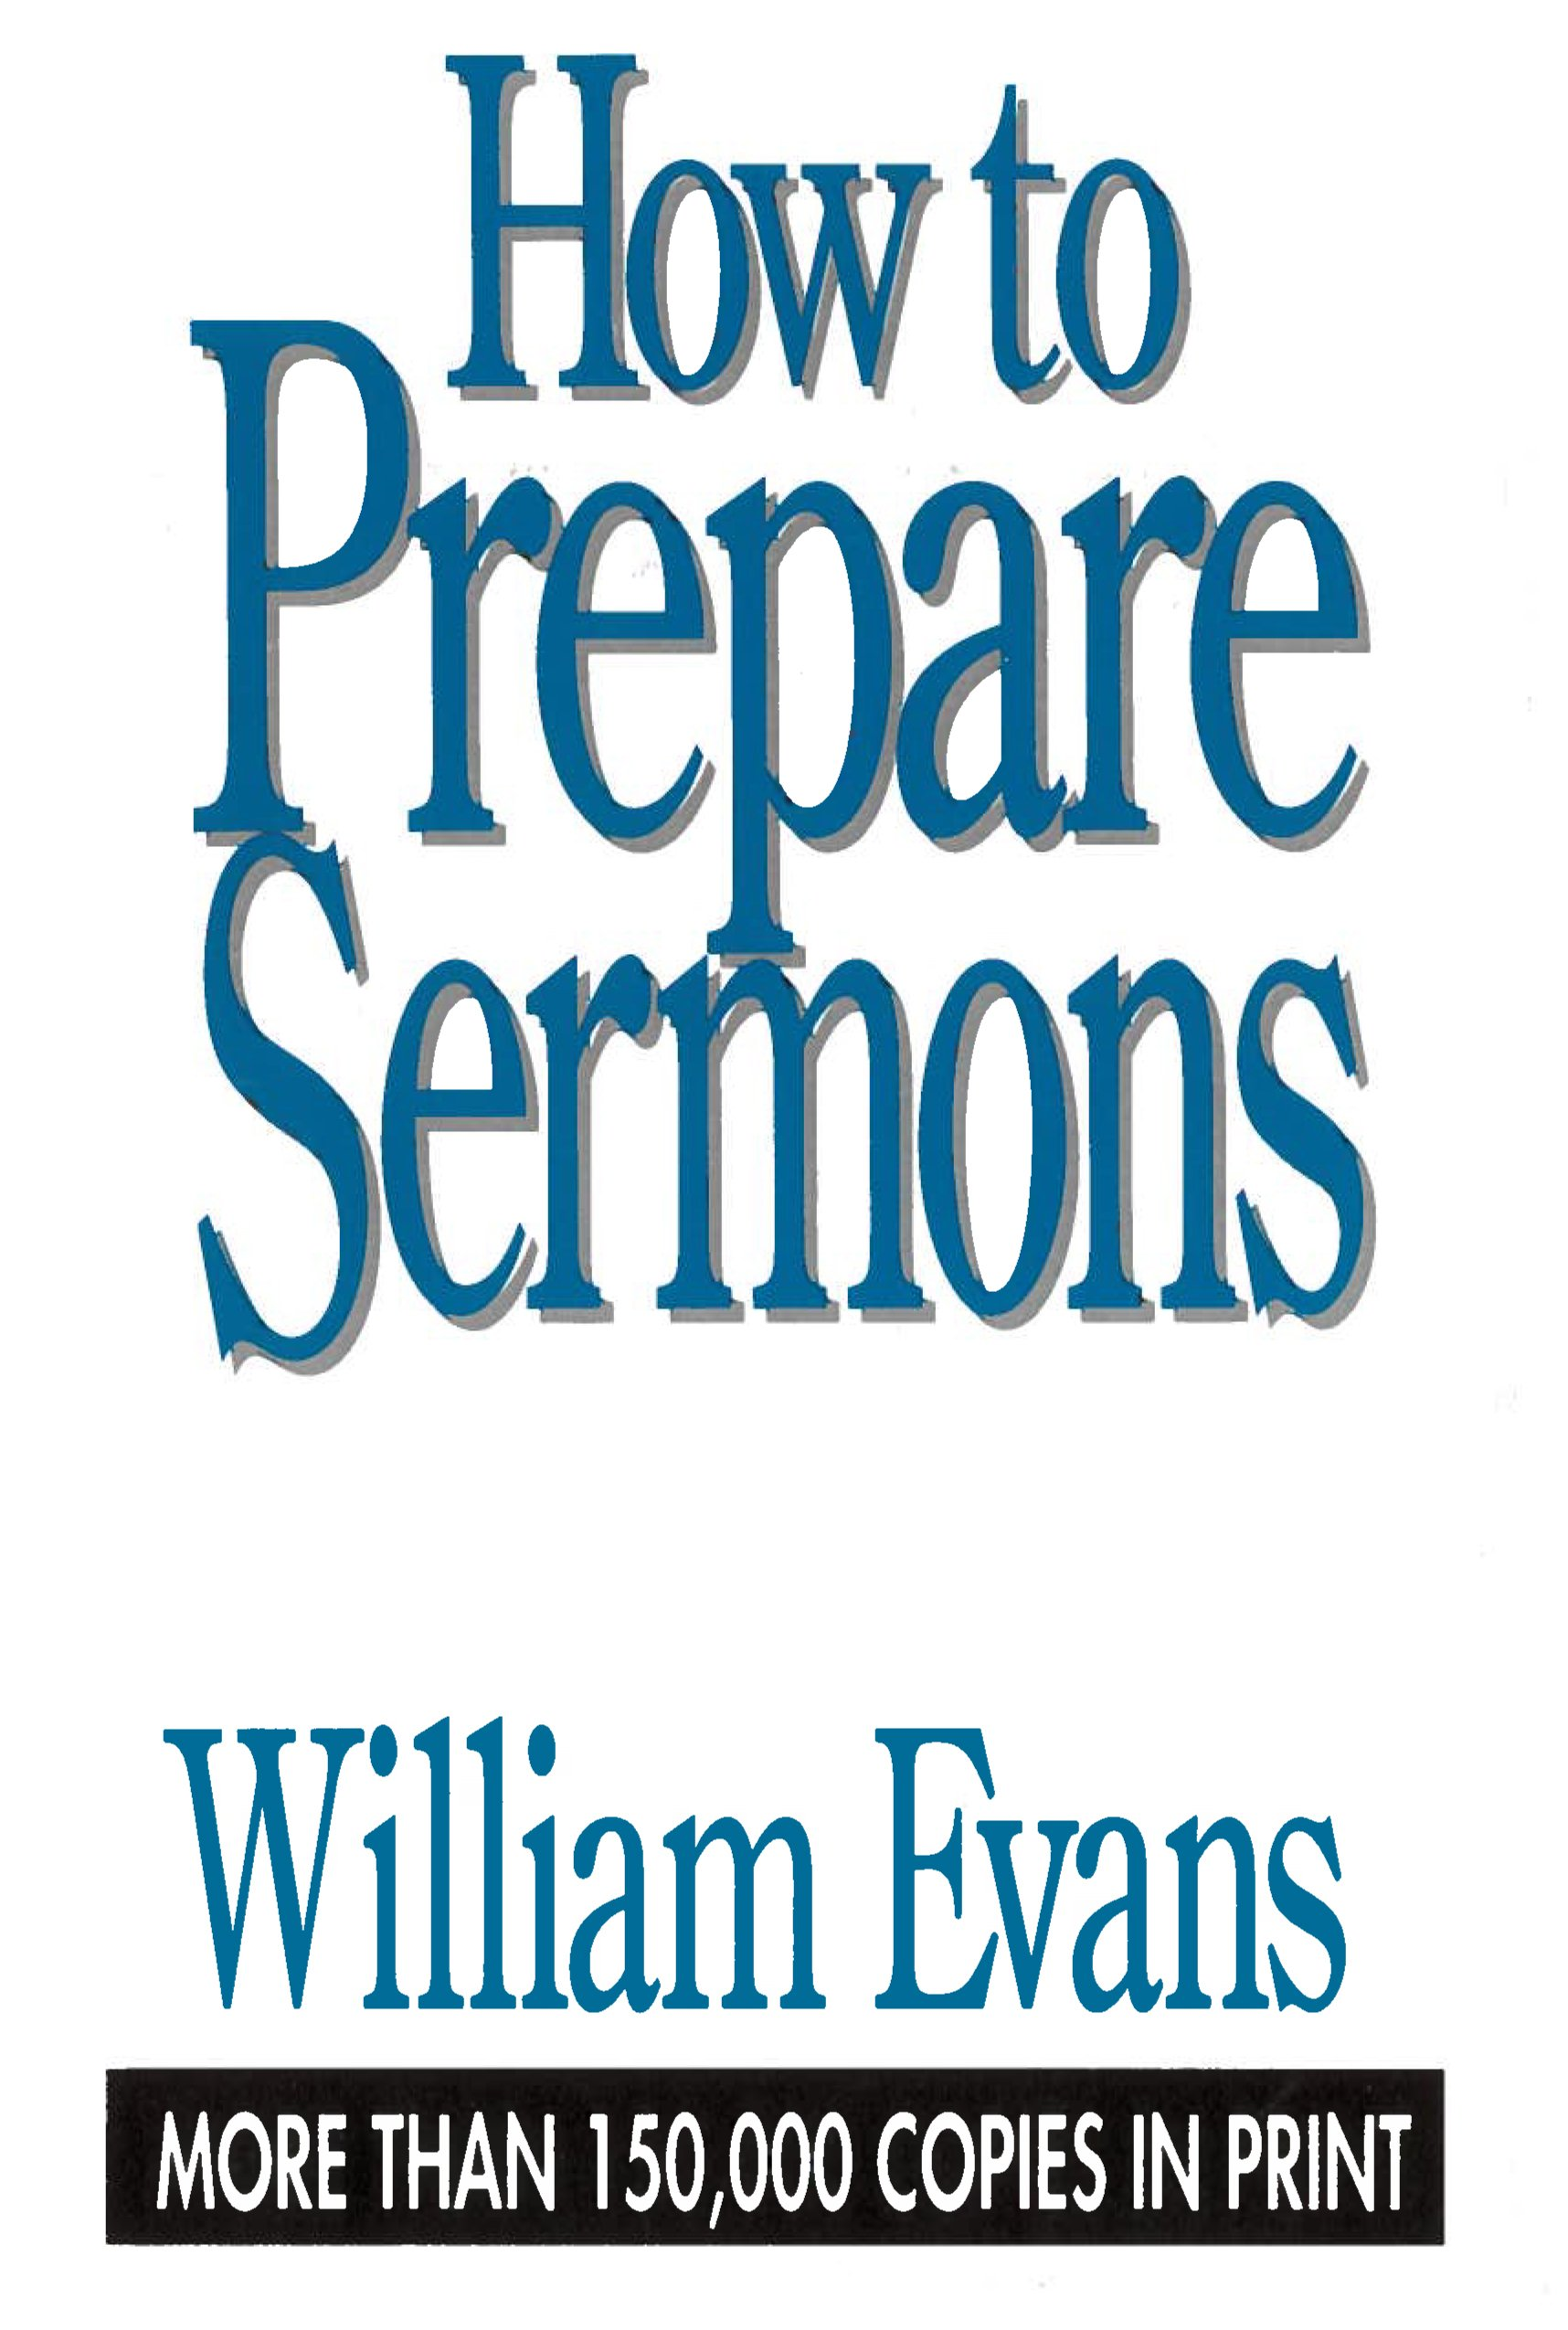 photo regarding Printable Sermons named How In direction of System Sermons: William Evans: 9780802437259: Amazon